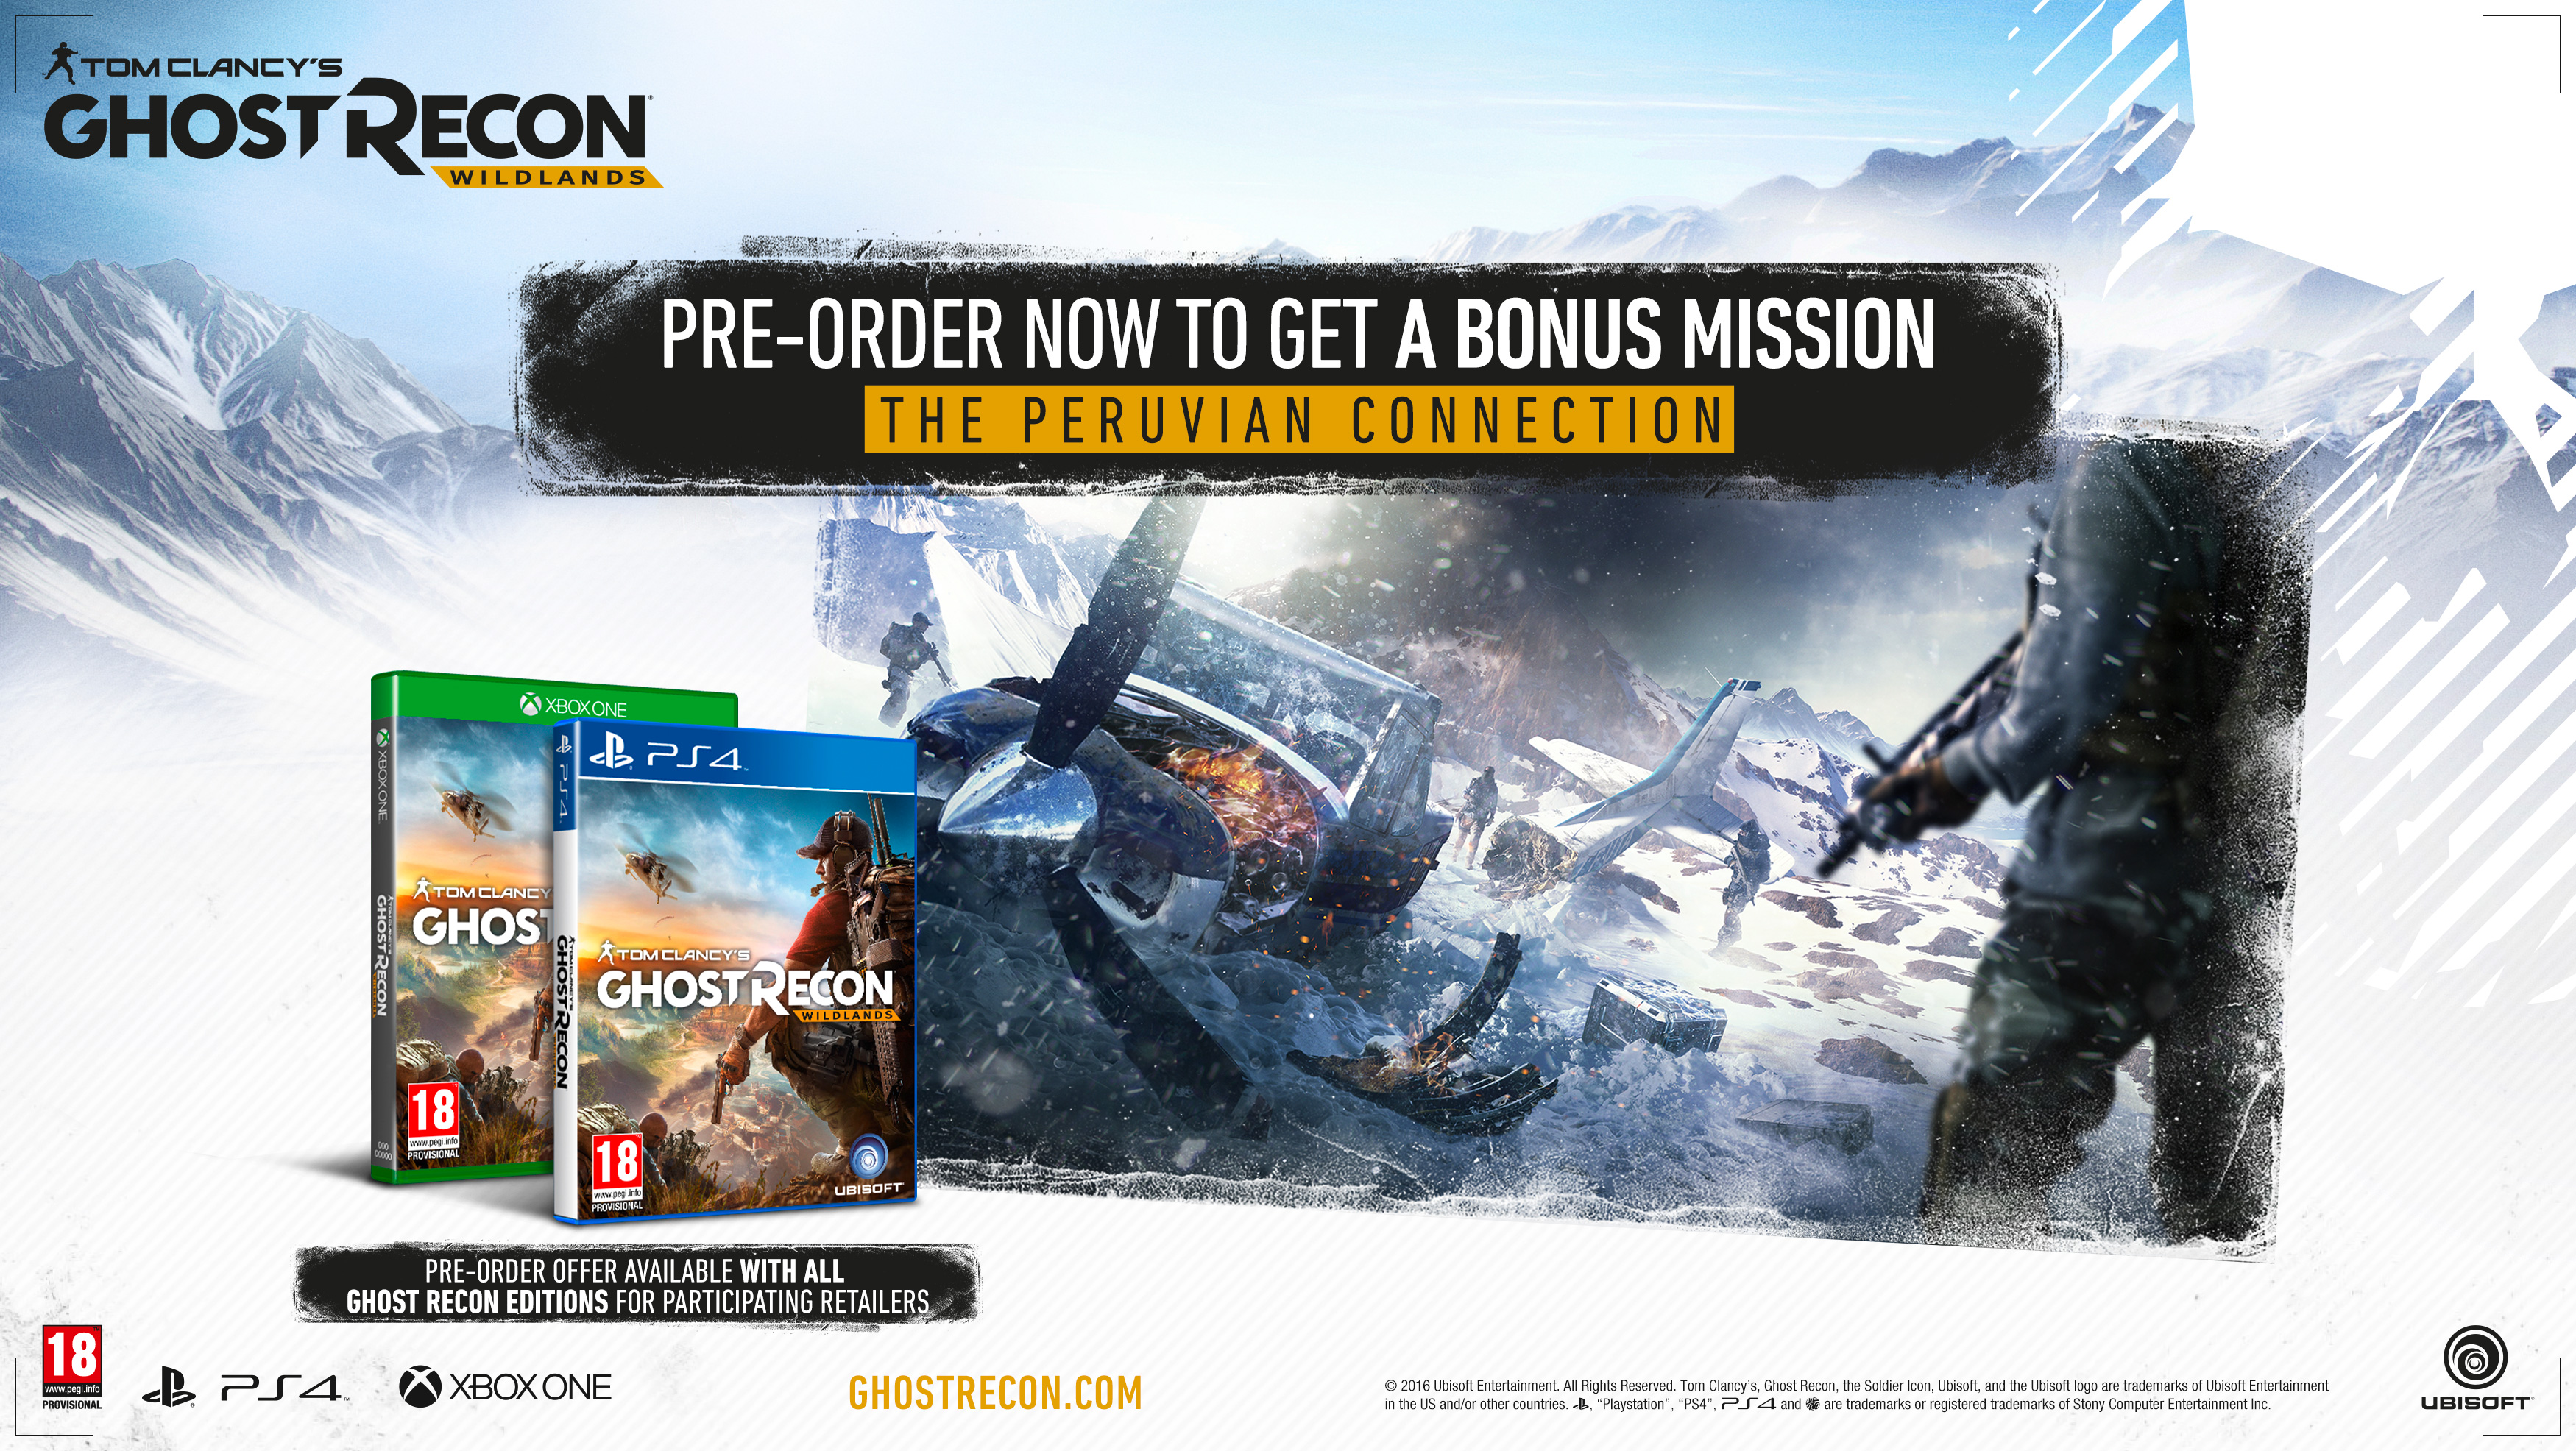 ghost recon wildlands trailer & special editions